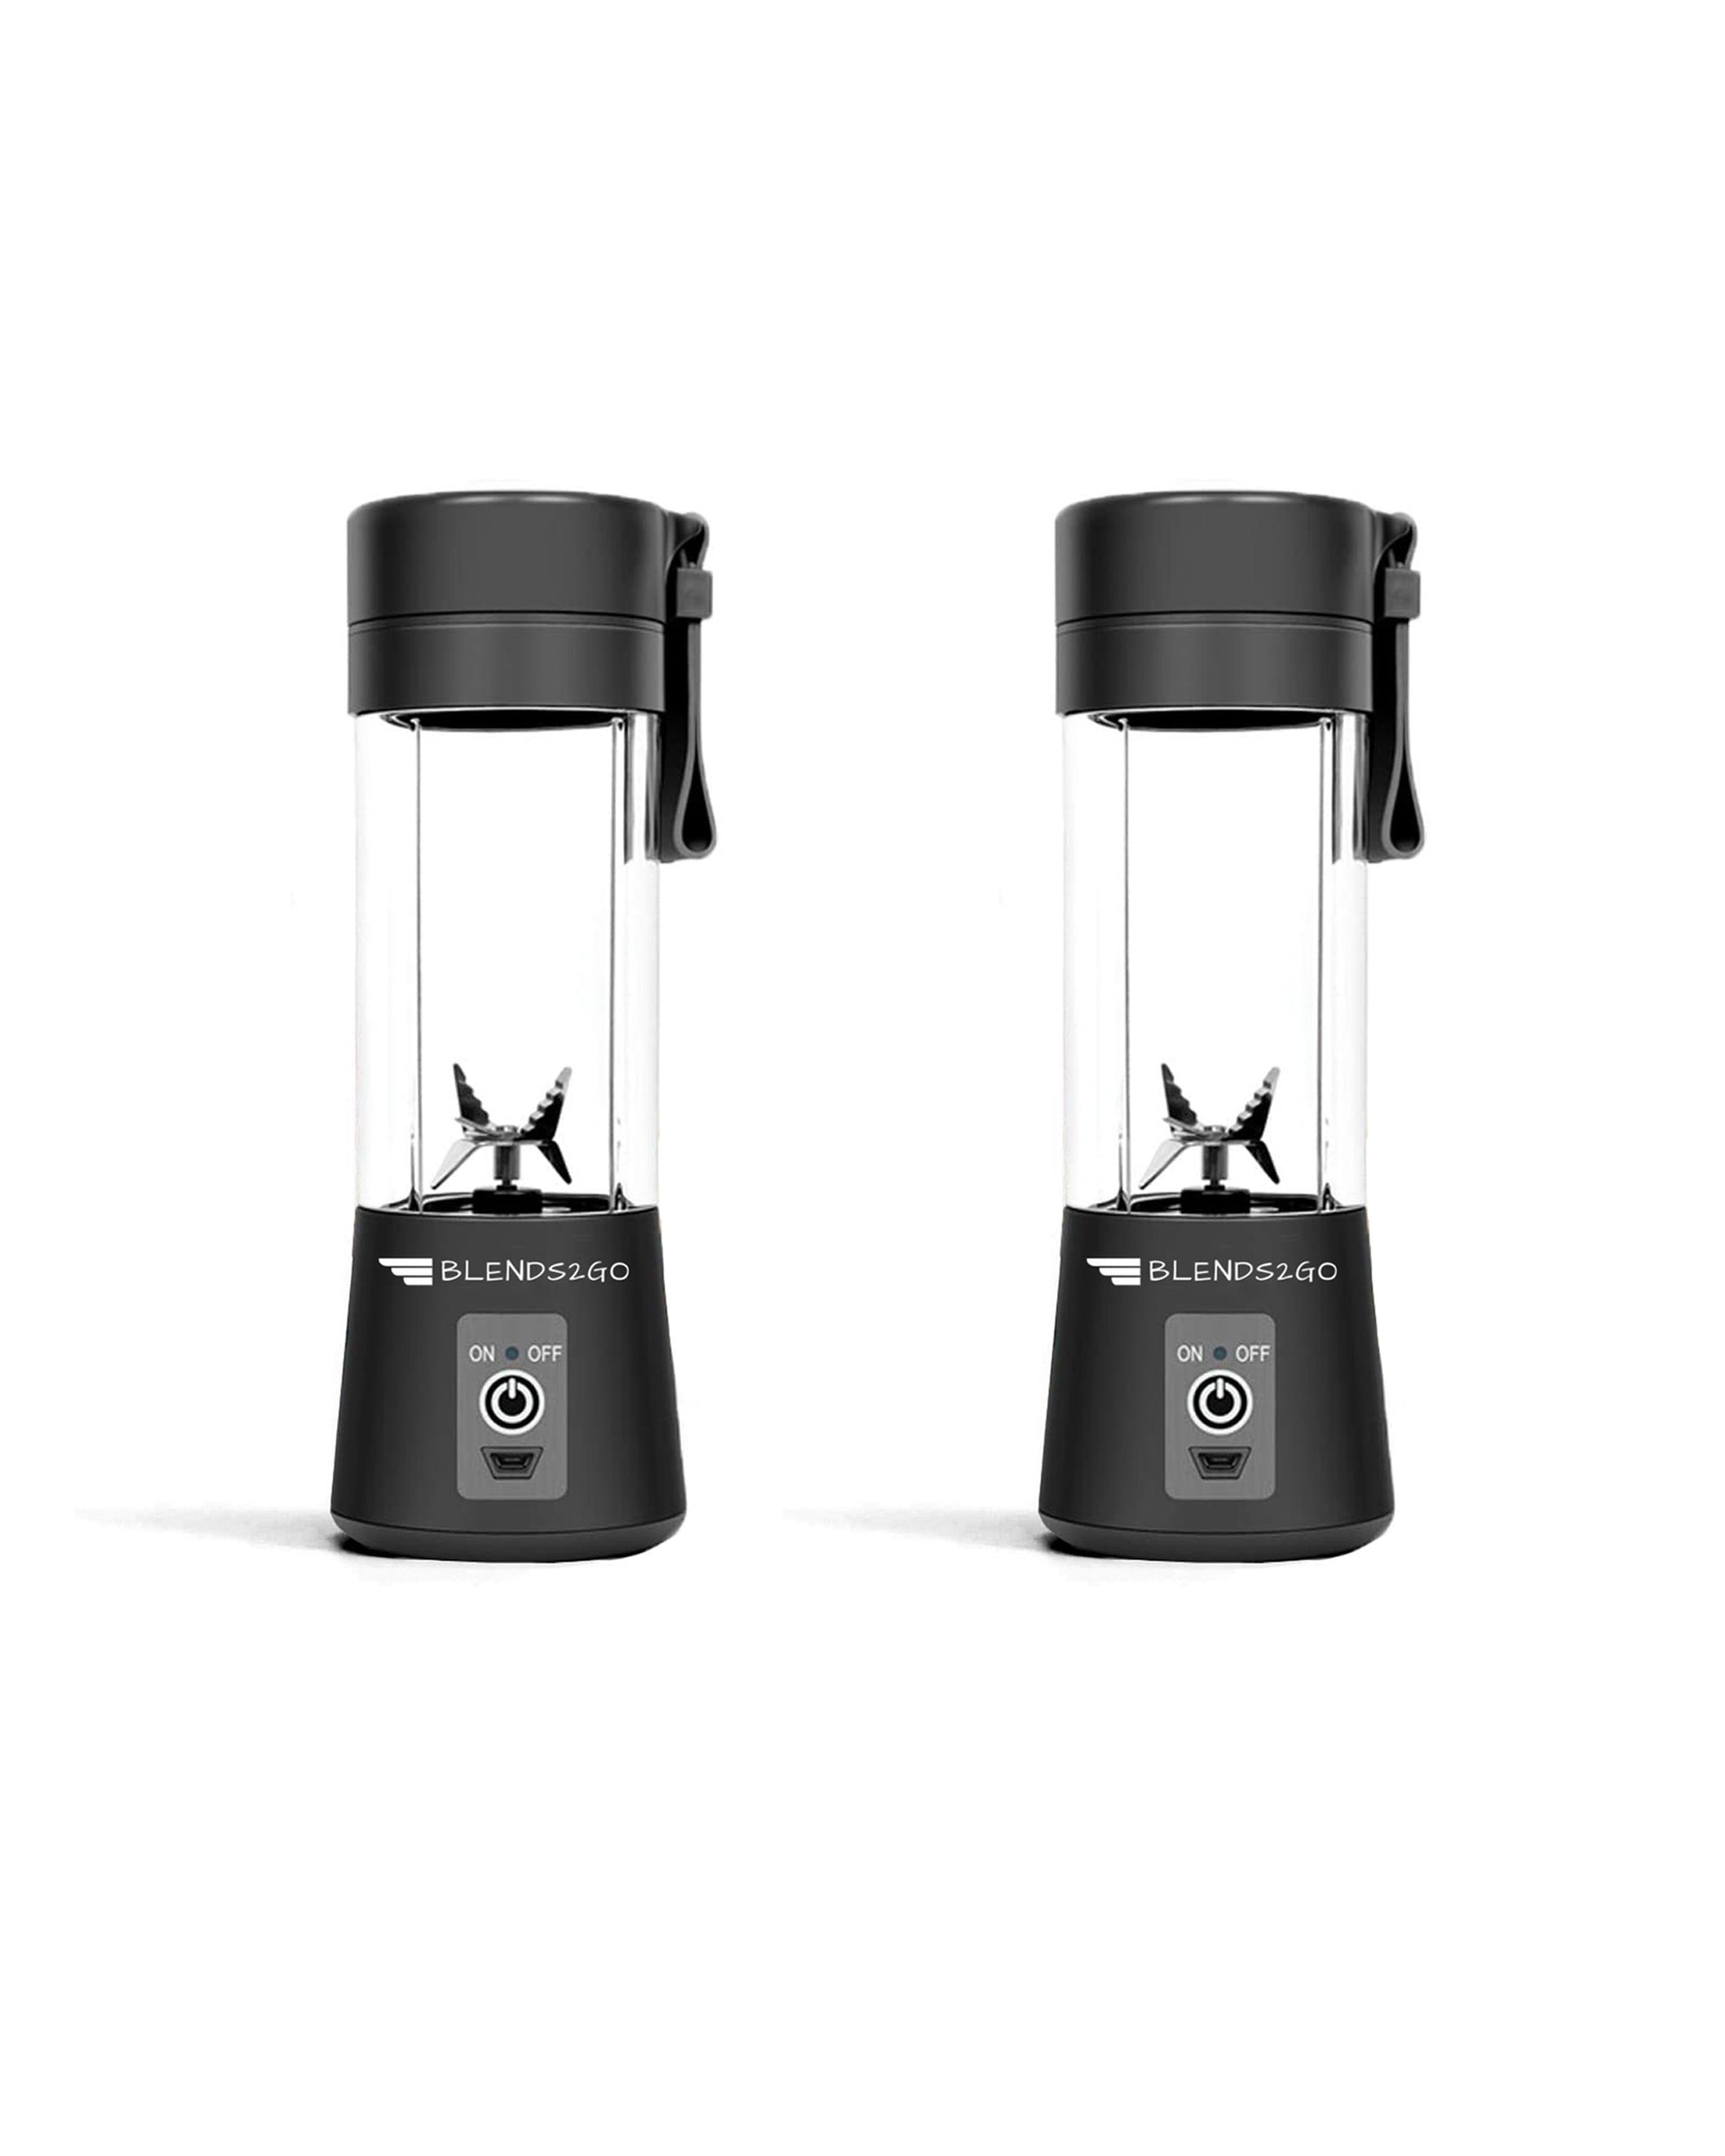 BEST VALUE!! 2x Blends2Go Blenders! - Double Your Skinny! 64% OFF!